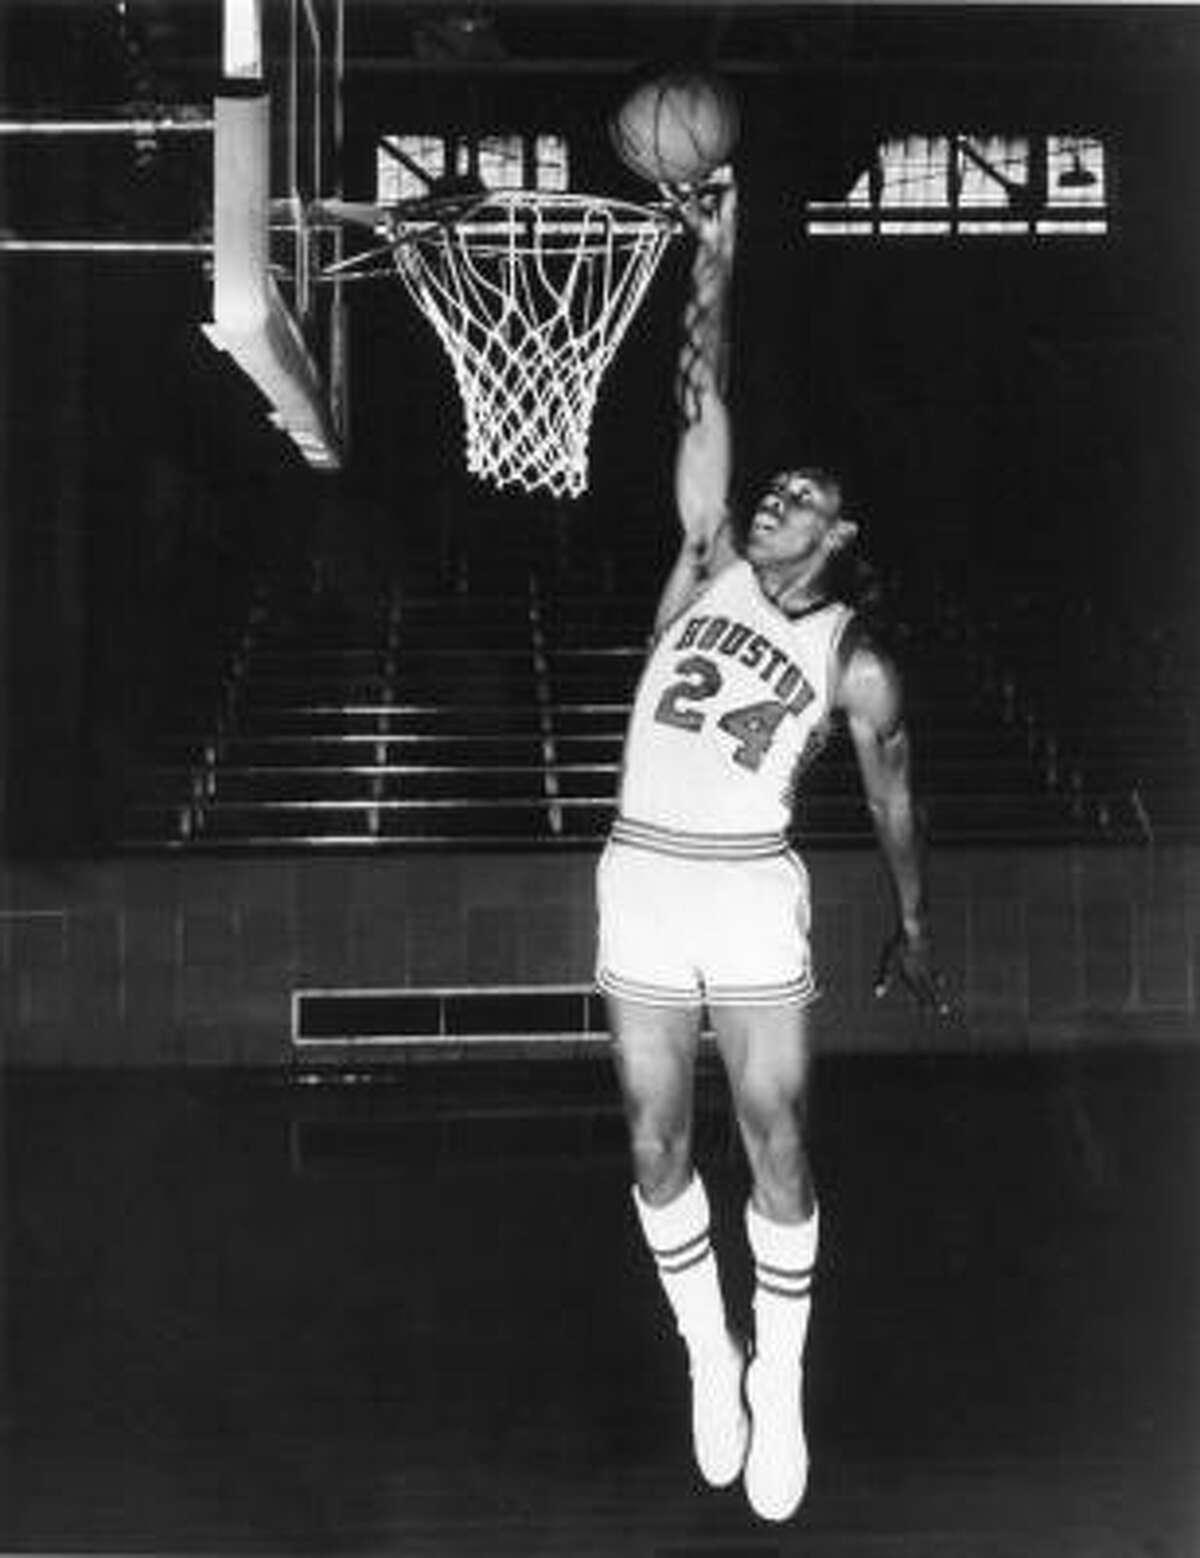 First game A crowd of 7,000 was on hand for the first game at Hofheinz Pavilion as Ollie Taylor (above) scored 29 points in an 89-72 win over Southwestern Louisiana.